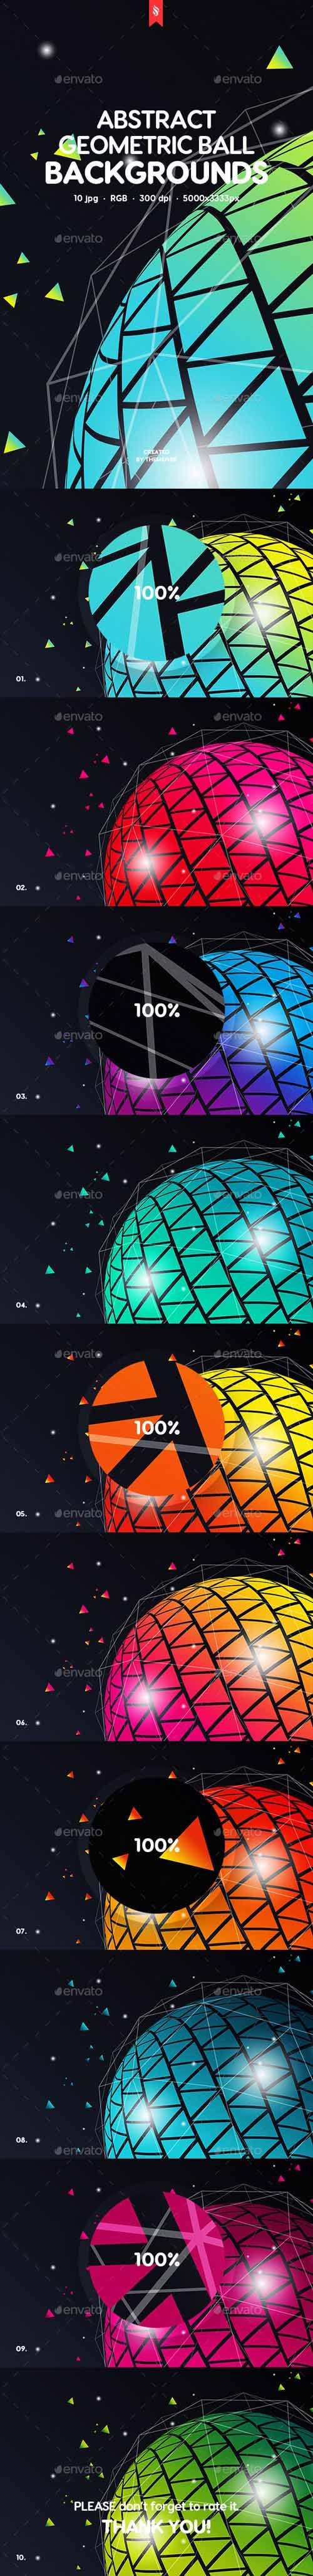 Geometric Ball Backgrounds 20342413